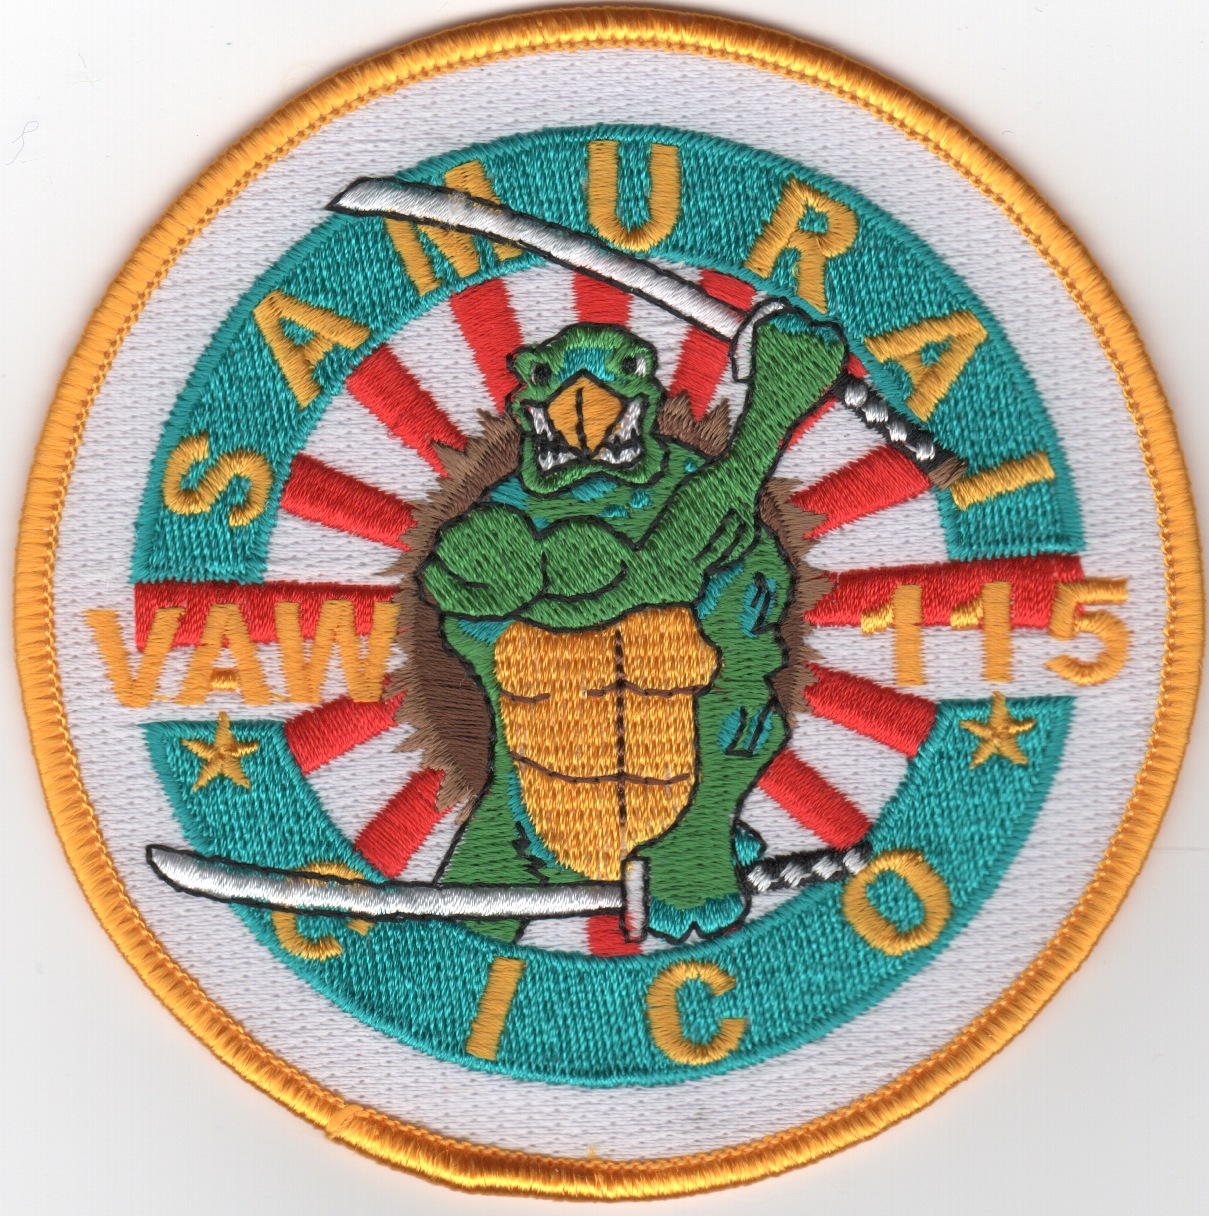 VAW-115 'Samurai Cico' Patch